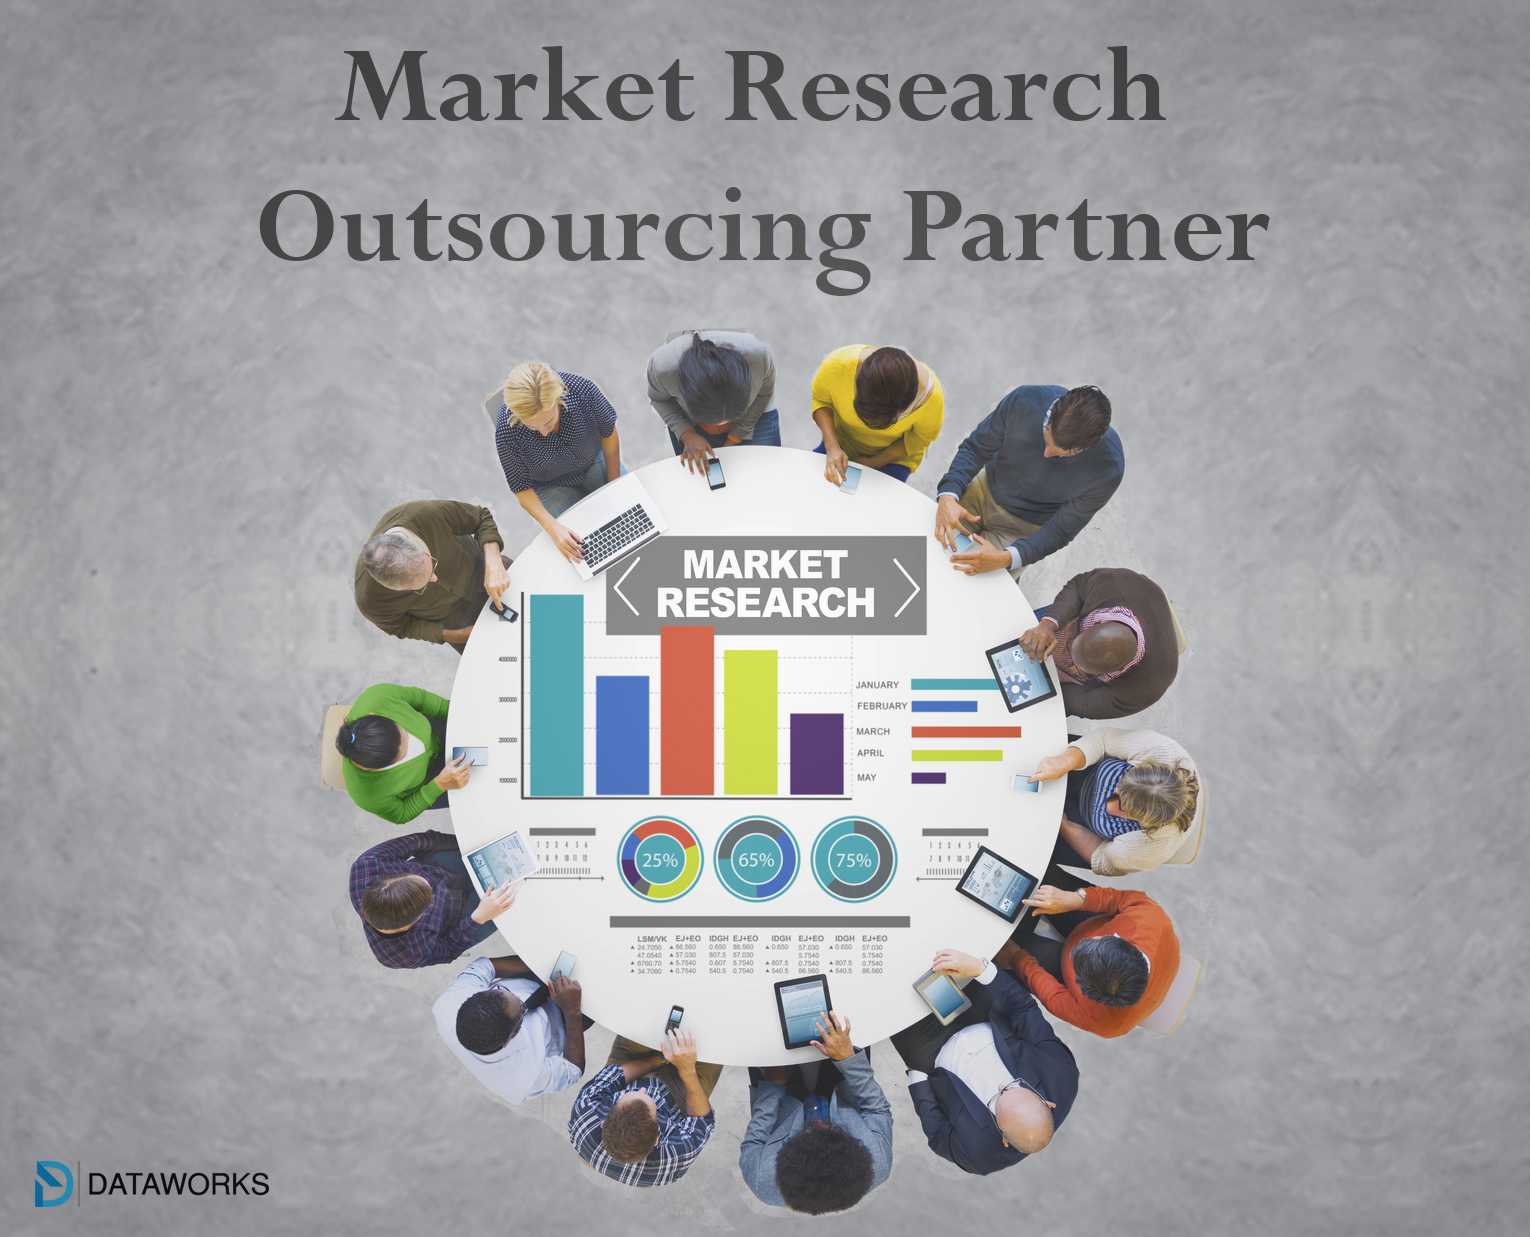 What you look for in your market research outsourcing partner?